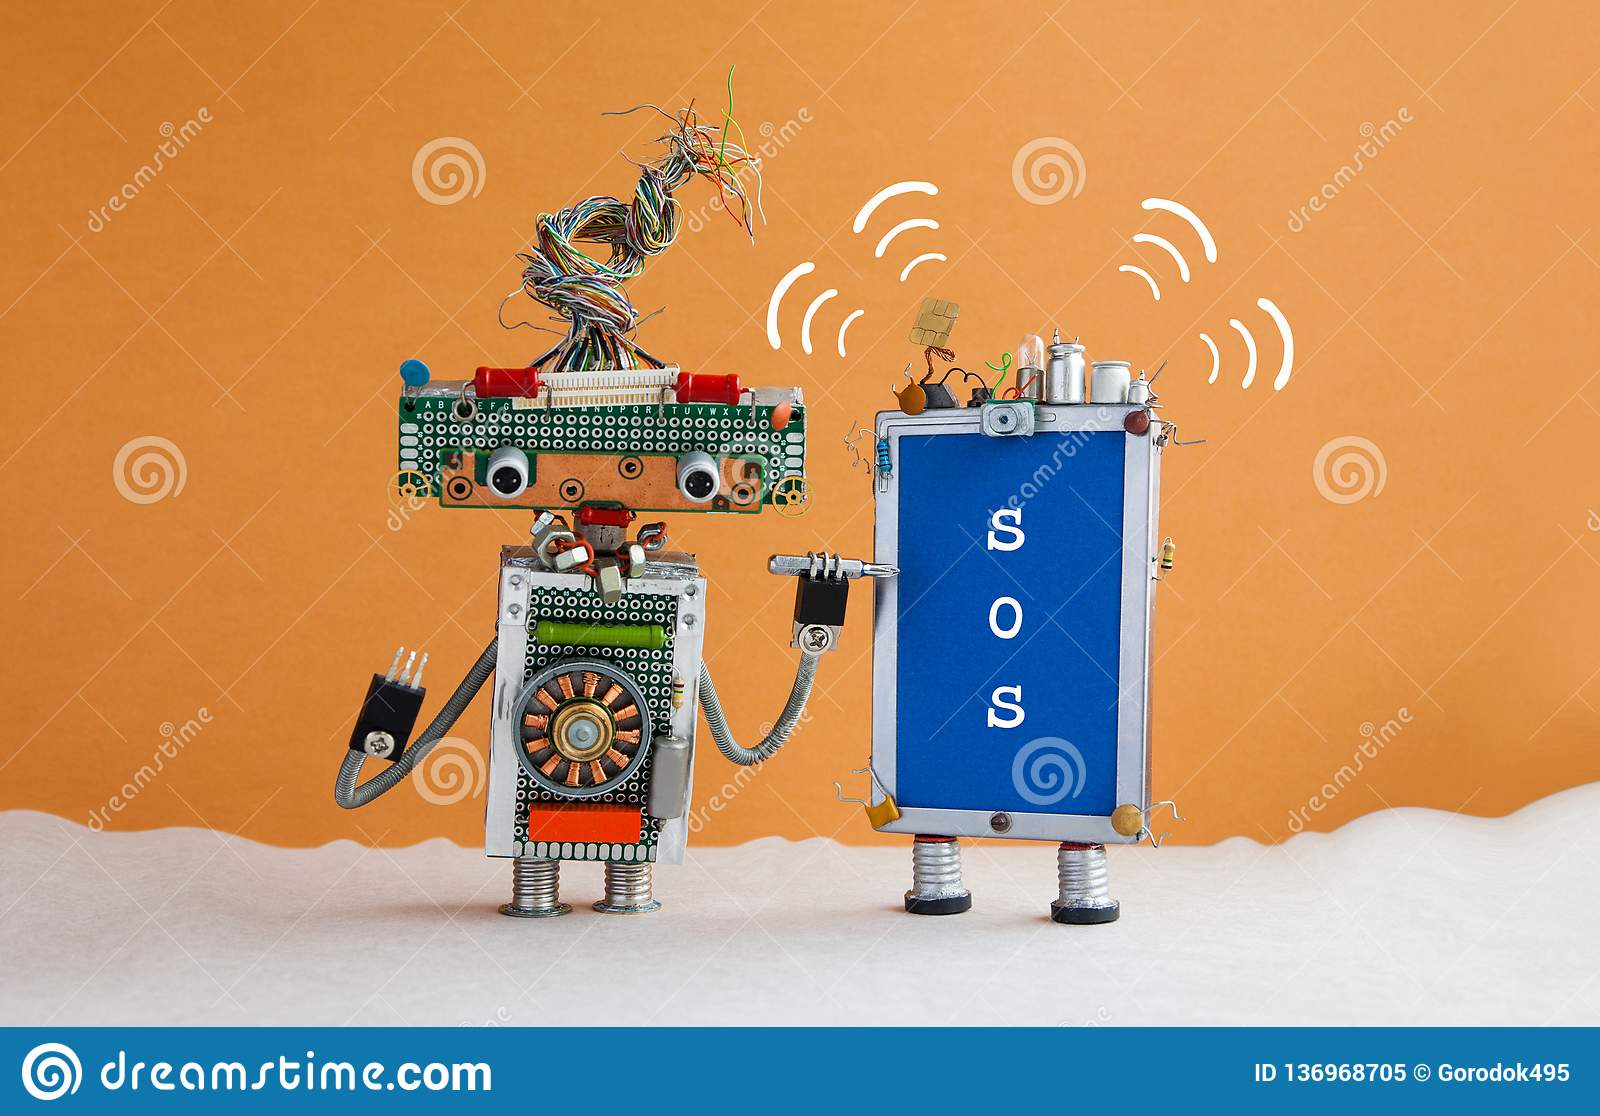 Robot handyman and broken smartphone message SOS. Robot serviceman with a screwdriver wants to fix the phone. Orange